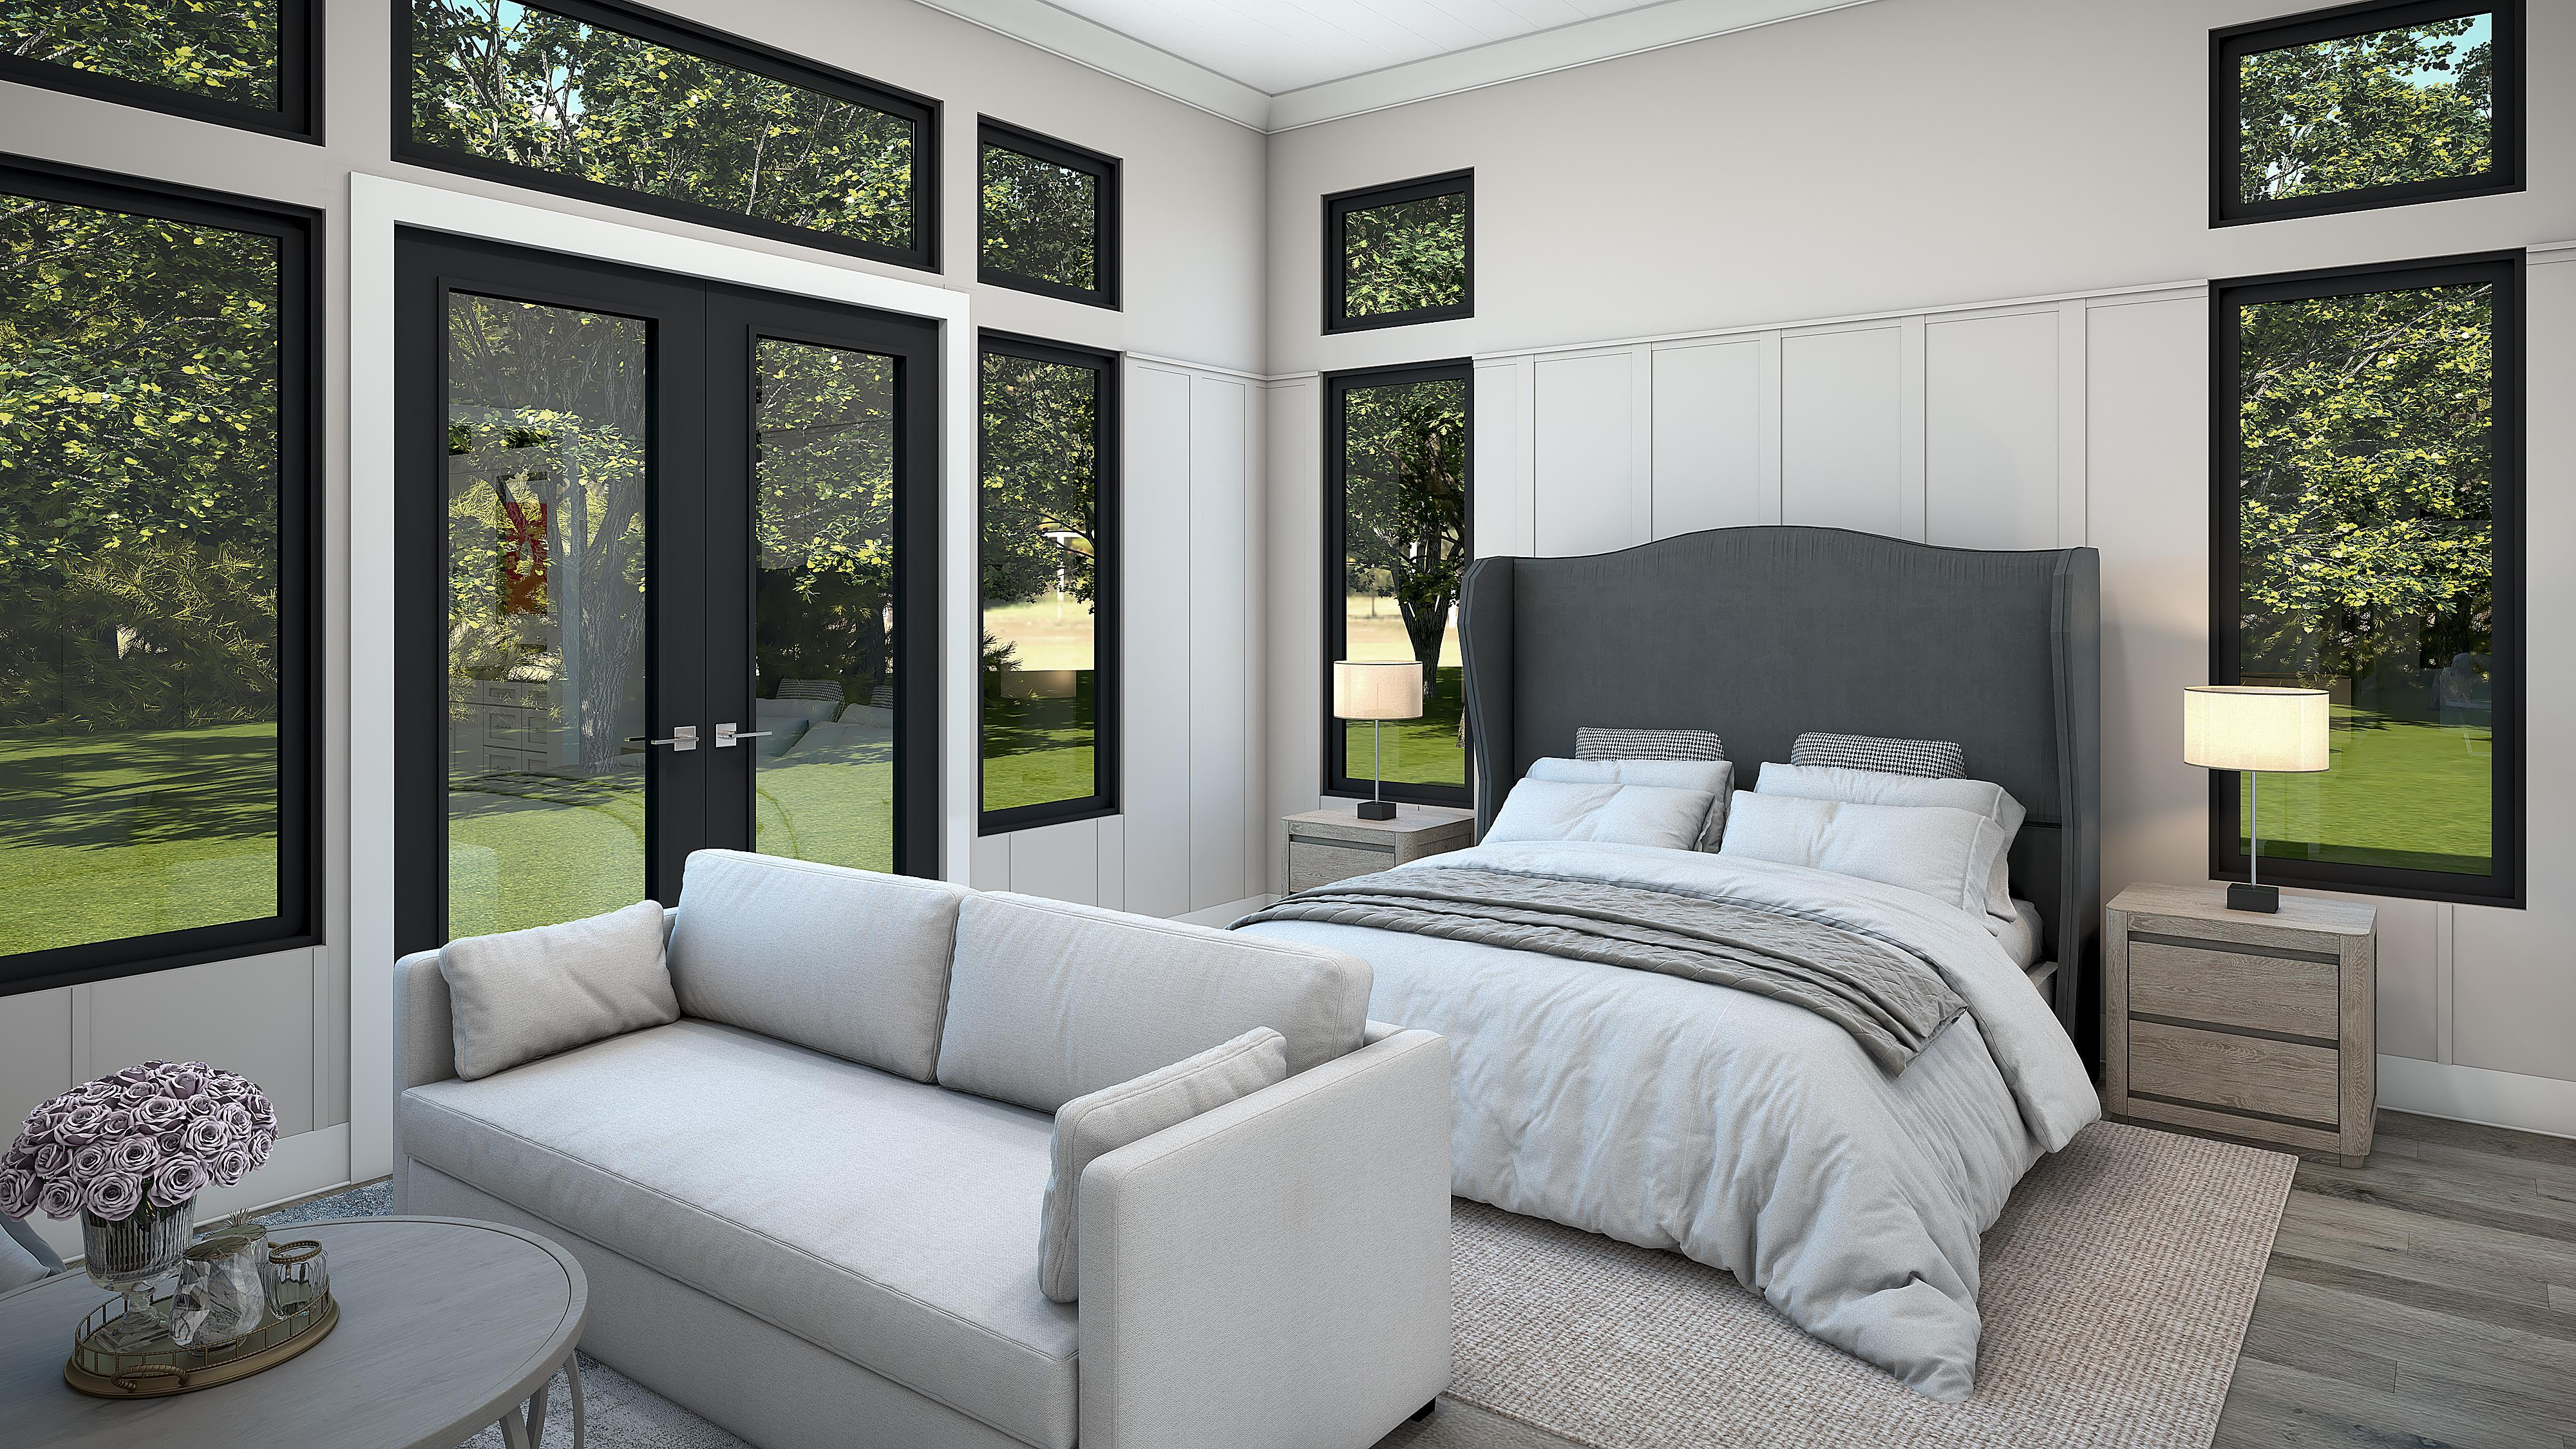 Bedroom featured in the Plan 3-A By Copper Valley  in Stockton-Lodi, CA